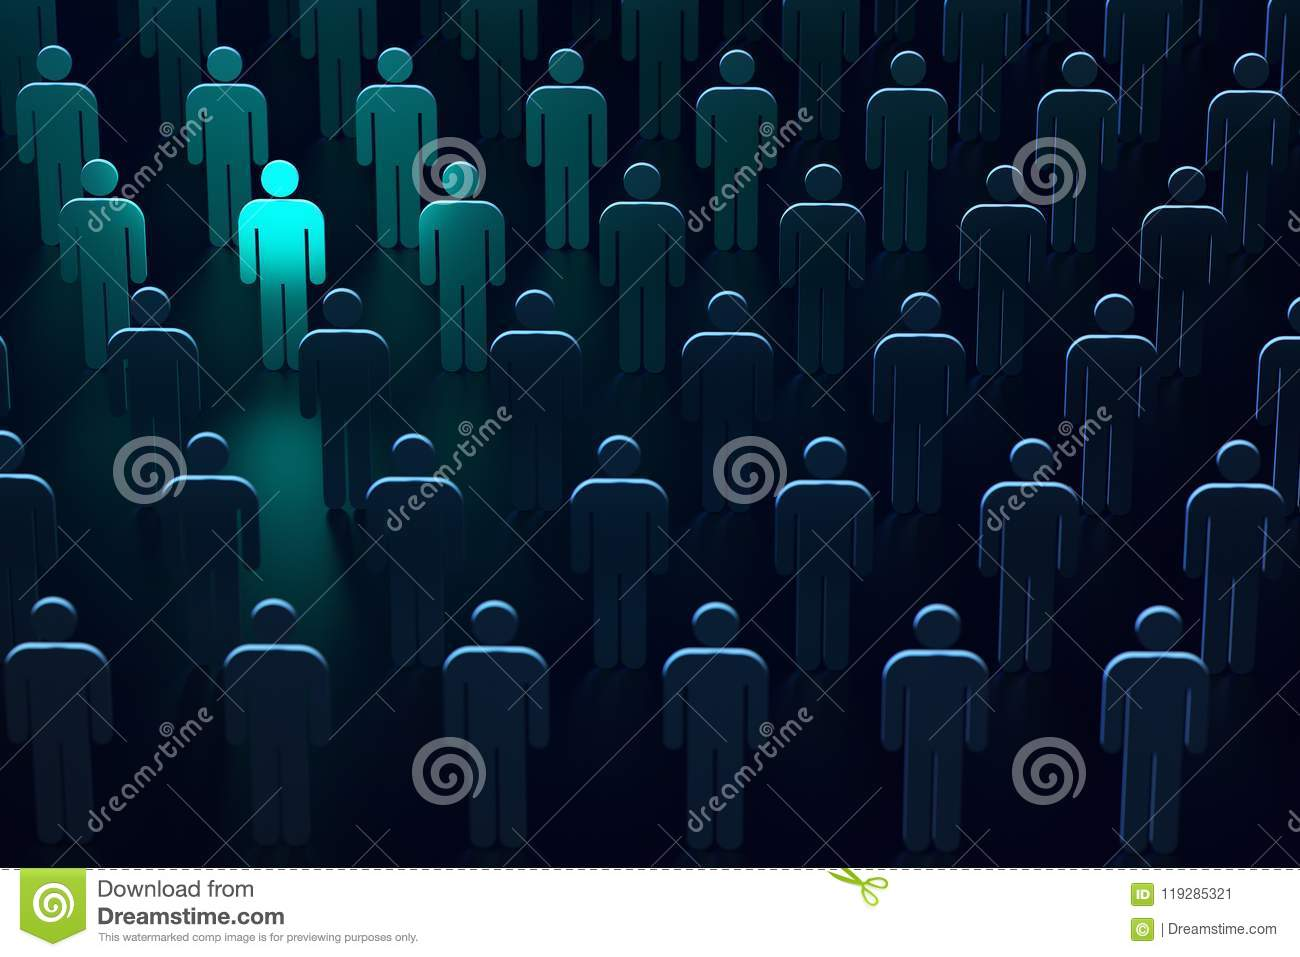 Light blue silhouette of a person as symbol of freedom and protection. The leader of secure technologies. 3D rendering